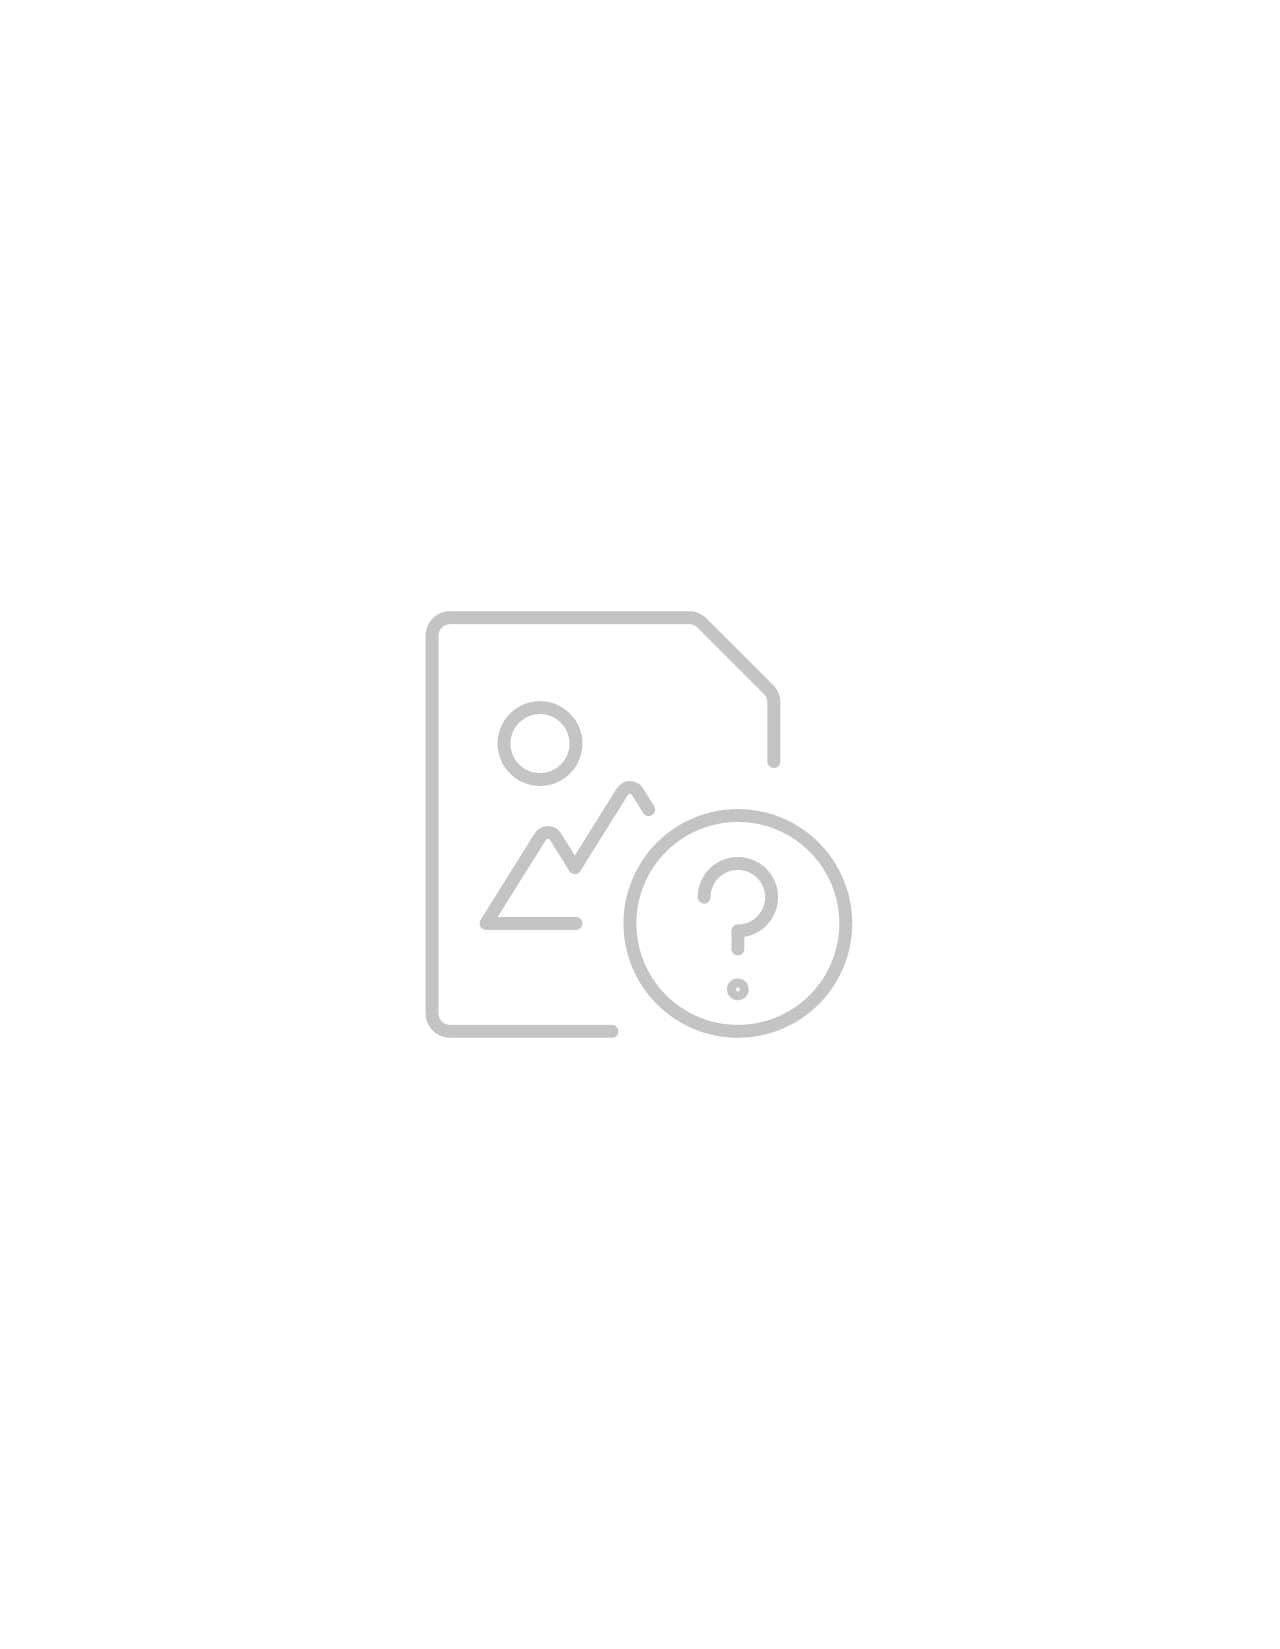 Lowell Sun, May 07, 1948, Page 1